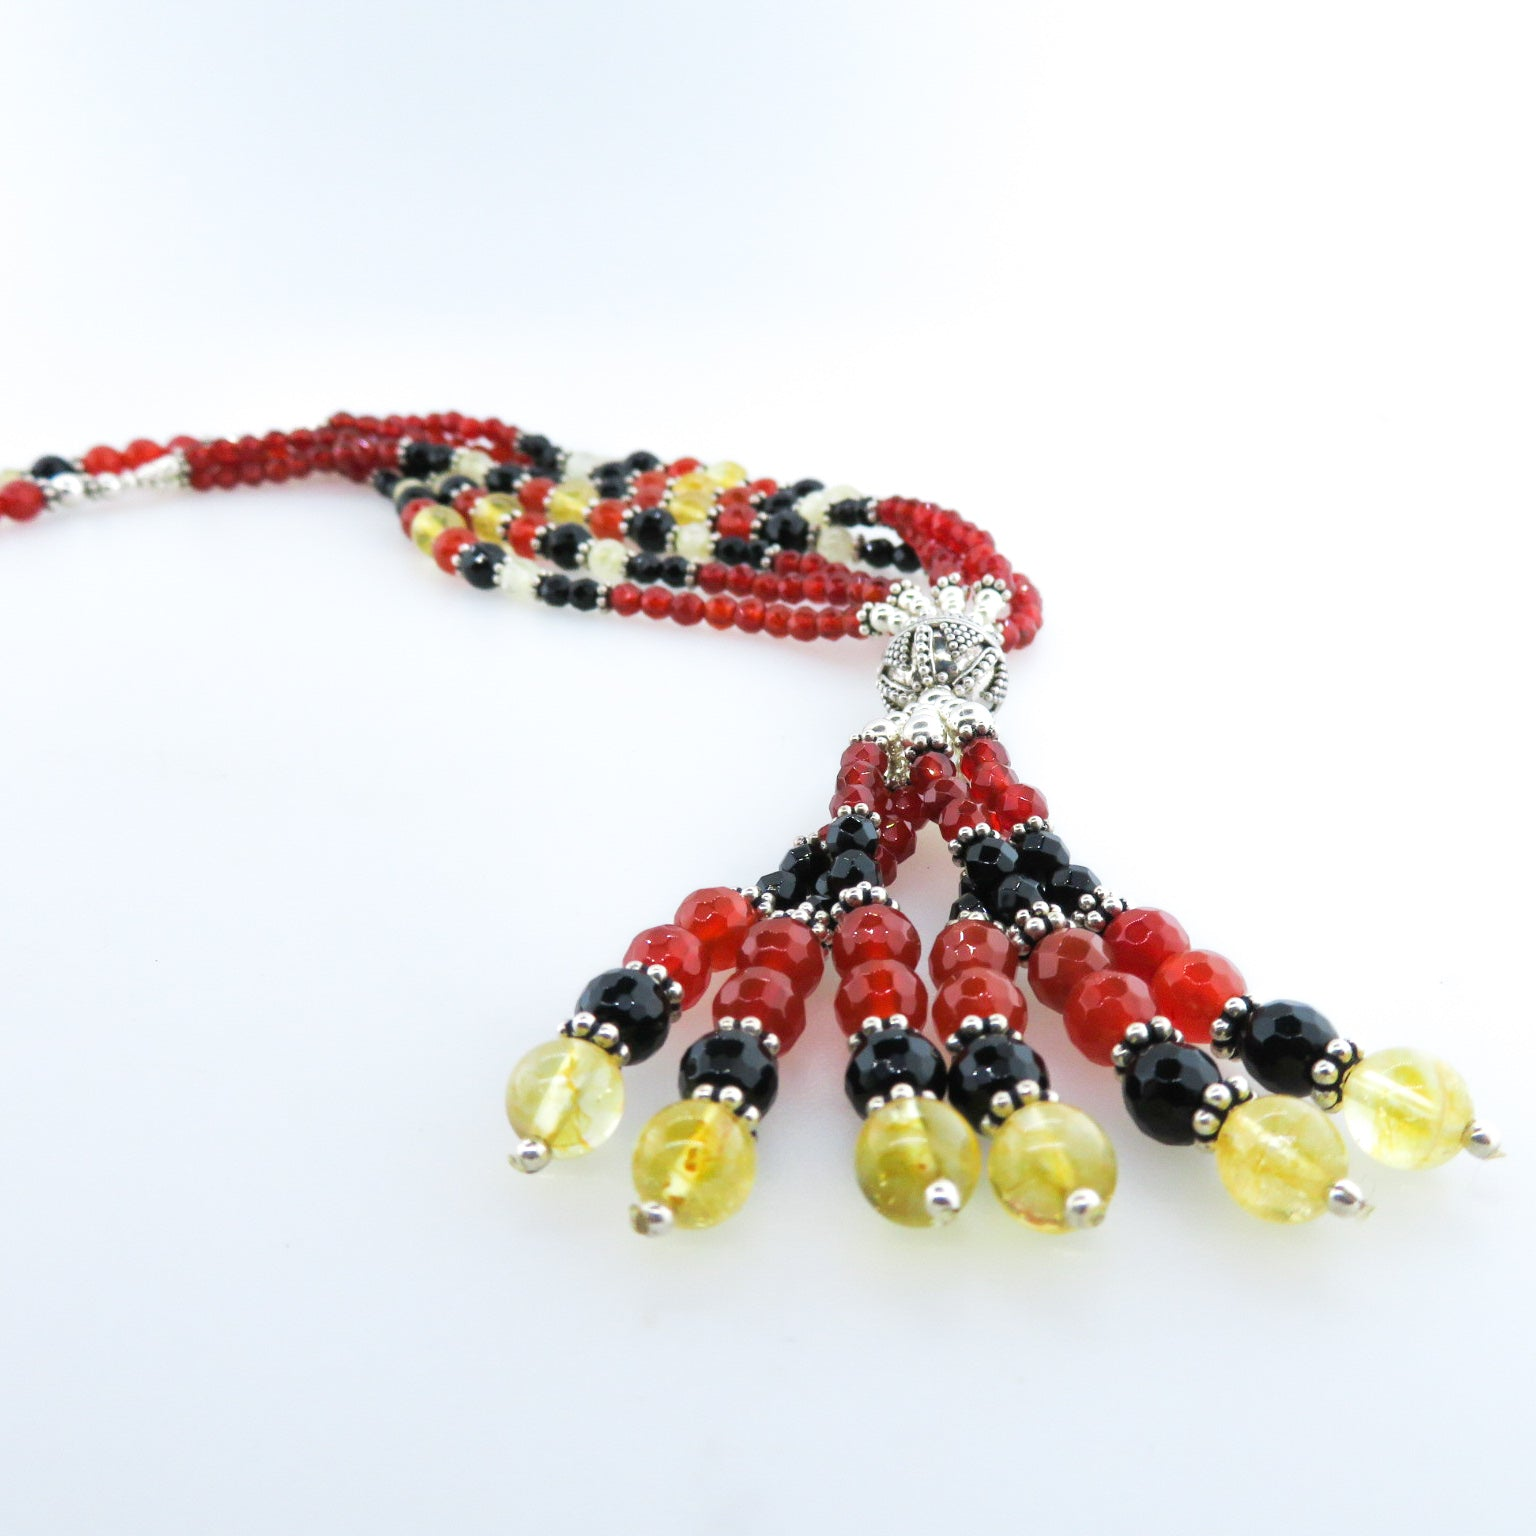 Carnelian Necklace with Citrine, Black Onyx and Silver Beads